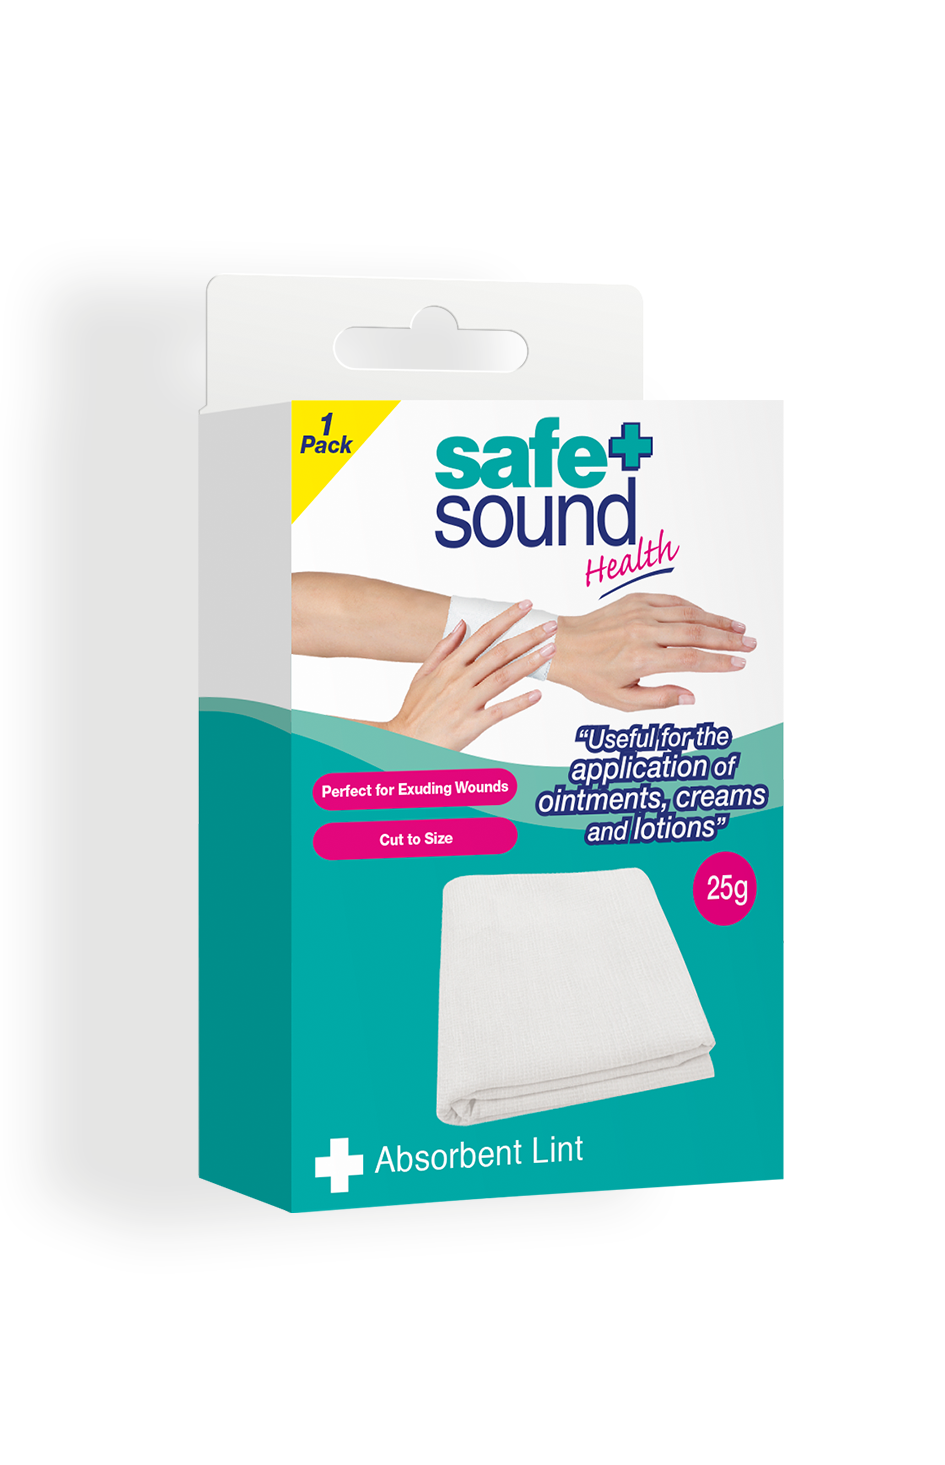 Safe and Sound Health Thick 25g Absorbent Lint